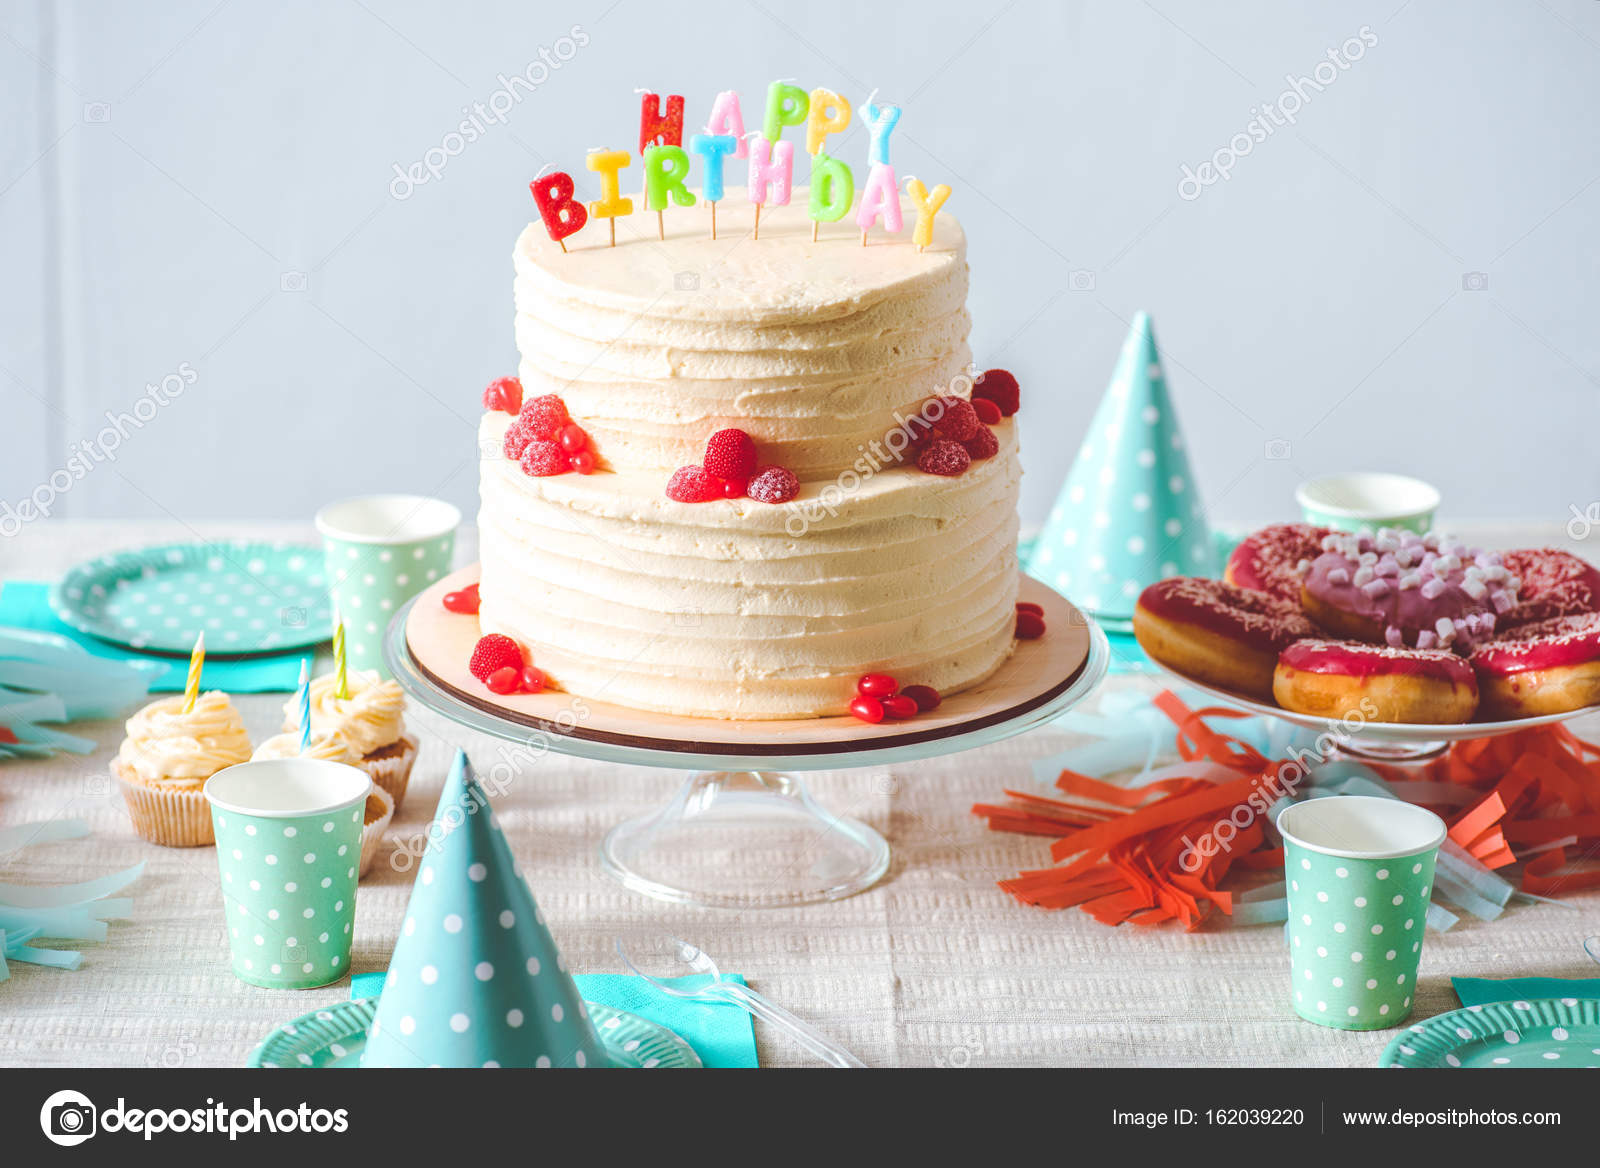 Delicious Birthday Cake With Cupcakes Doughnuts And Paper Cups On Festive Table Photo By